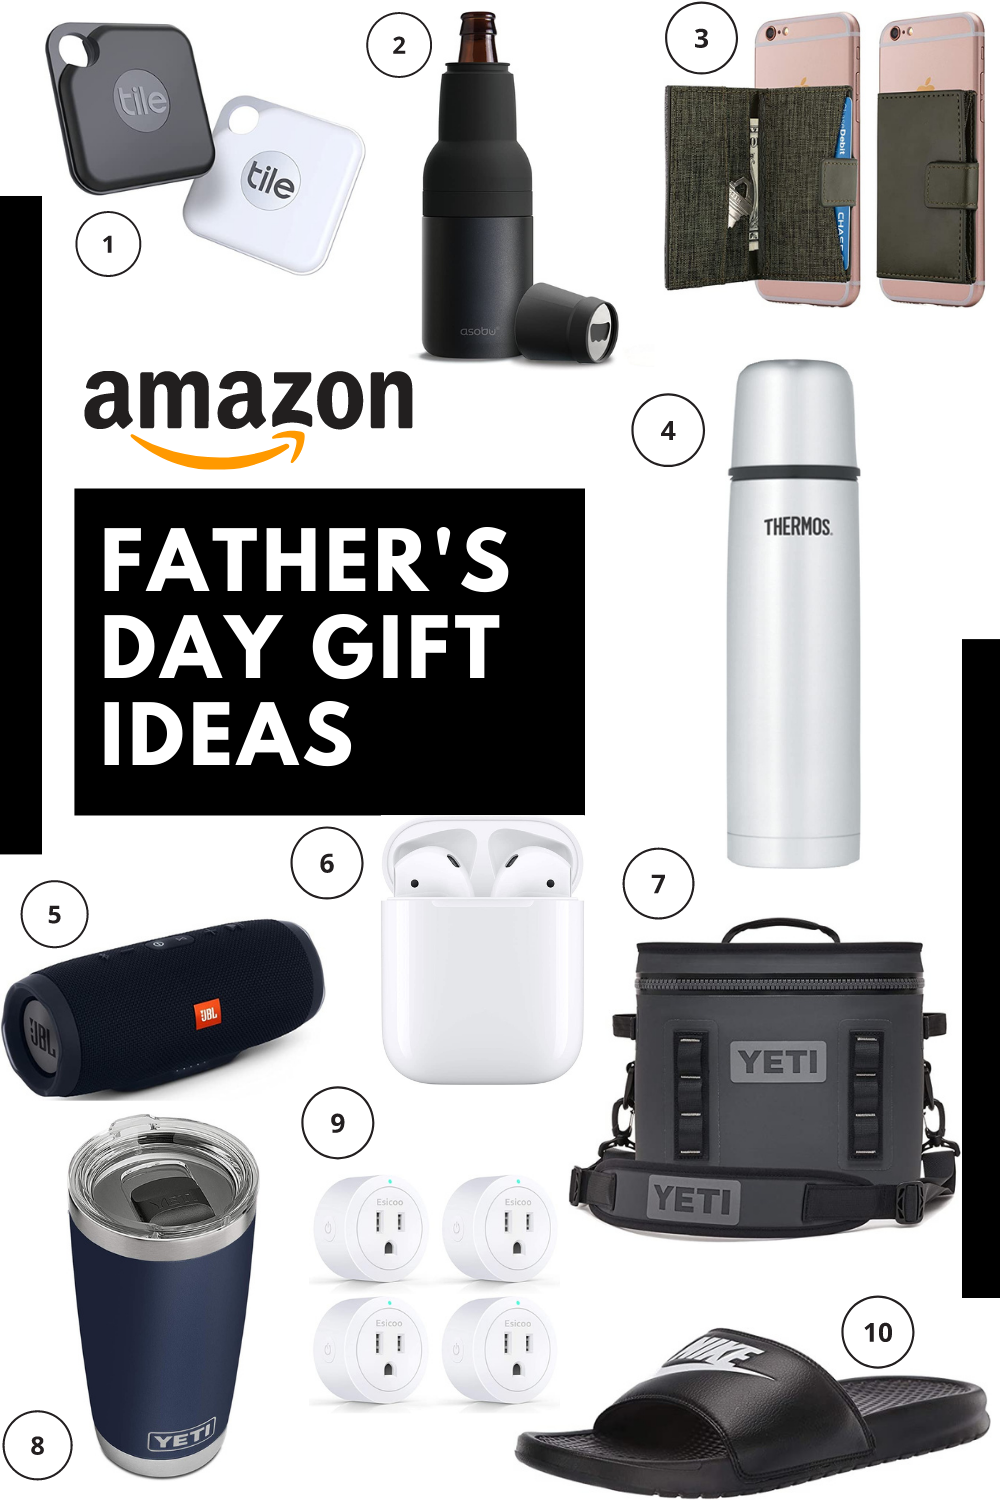 Amazon's Best Father's Day Gifts for 2021